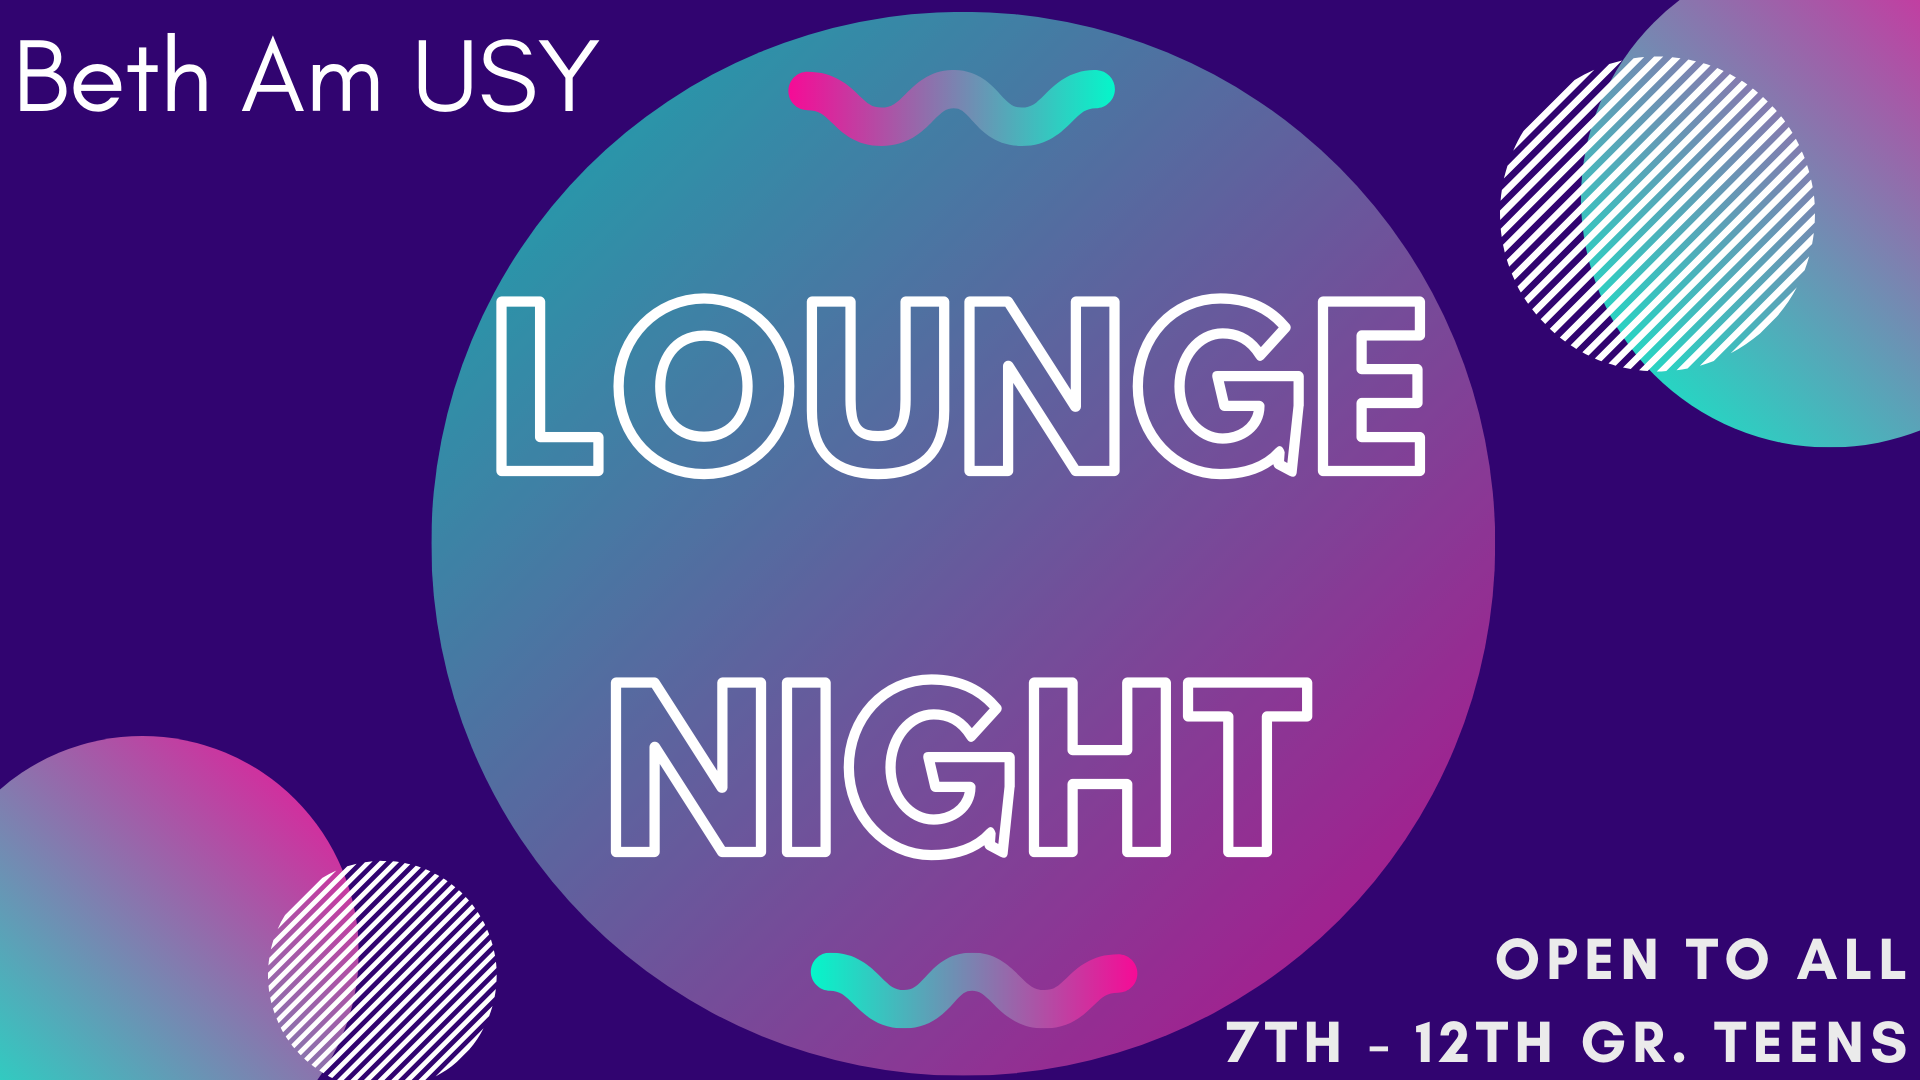 Banner Image for USY Lounge Night